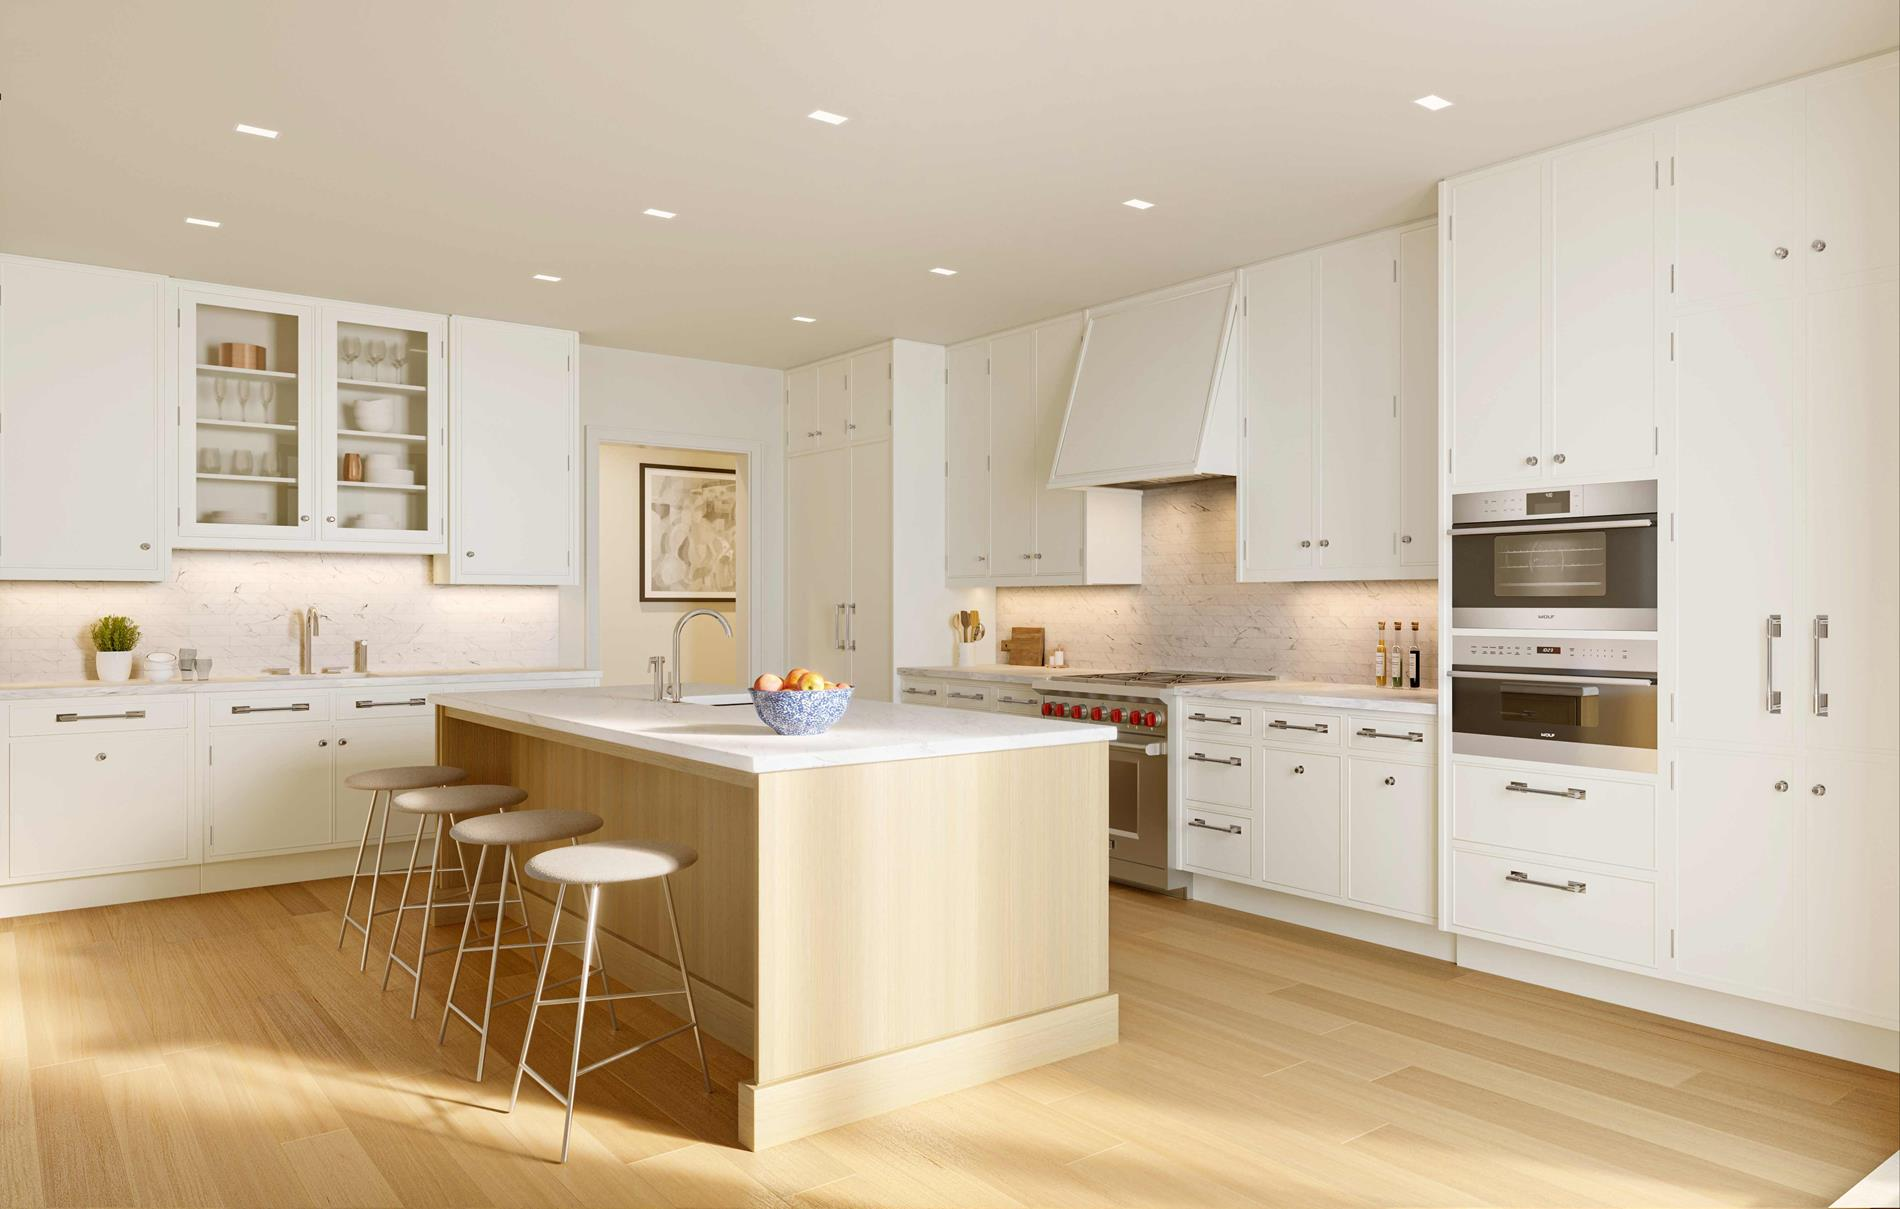 378 West End Avenue 15-A Upper West Side New York NY 10024